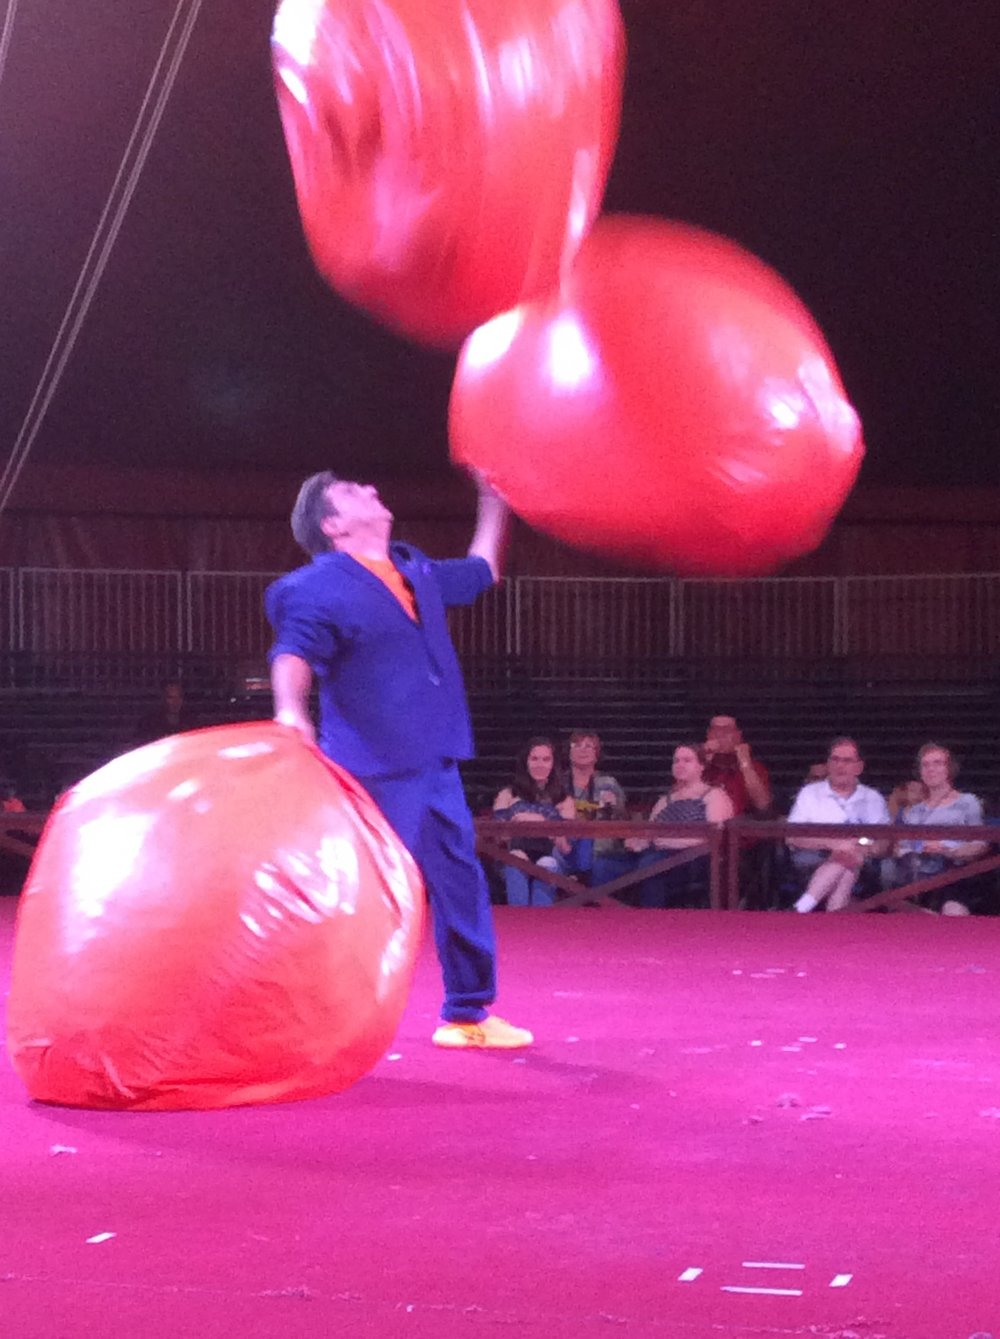 Michael Goudeau Juggling in the Circus